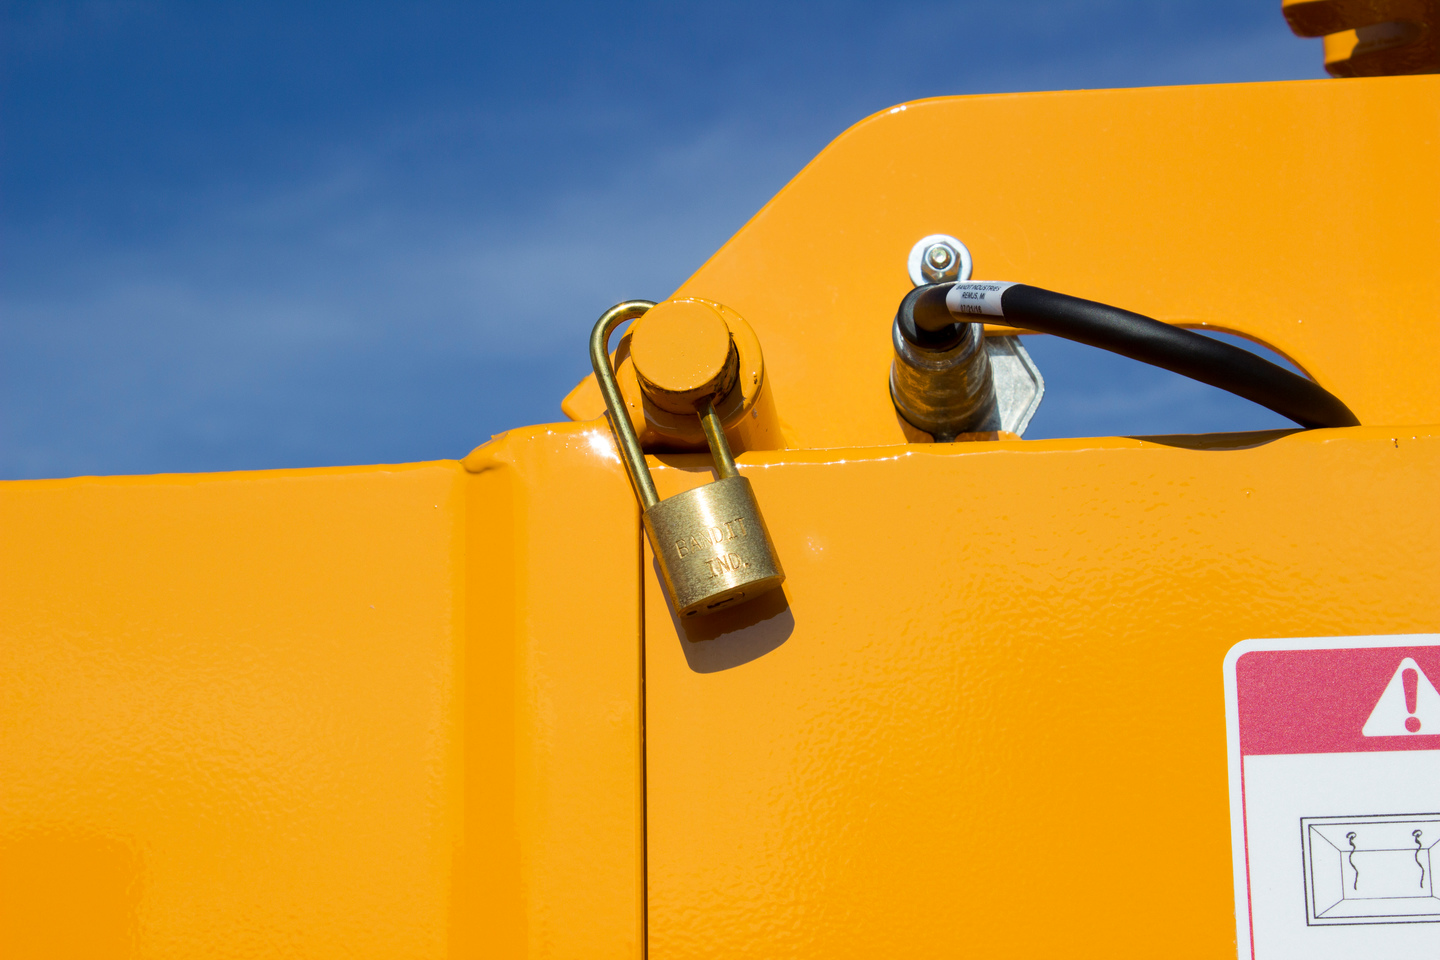 All Brush Bandit hand-fed chippers are equipped with a chipper hood lock pin